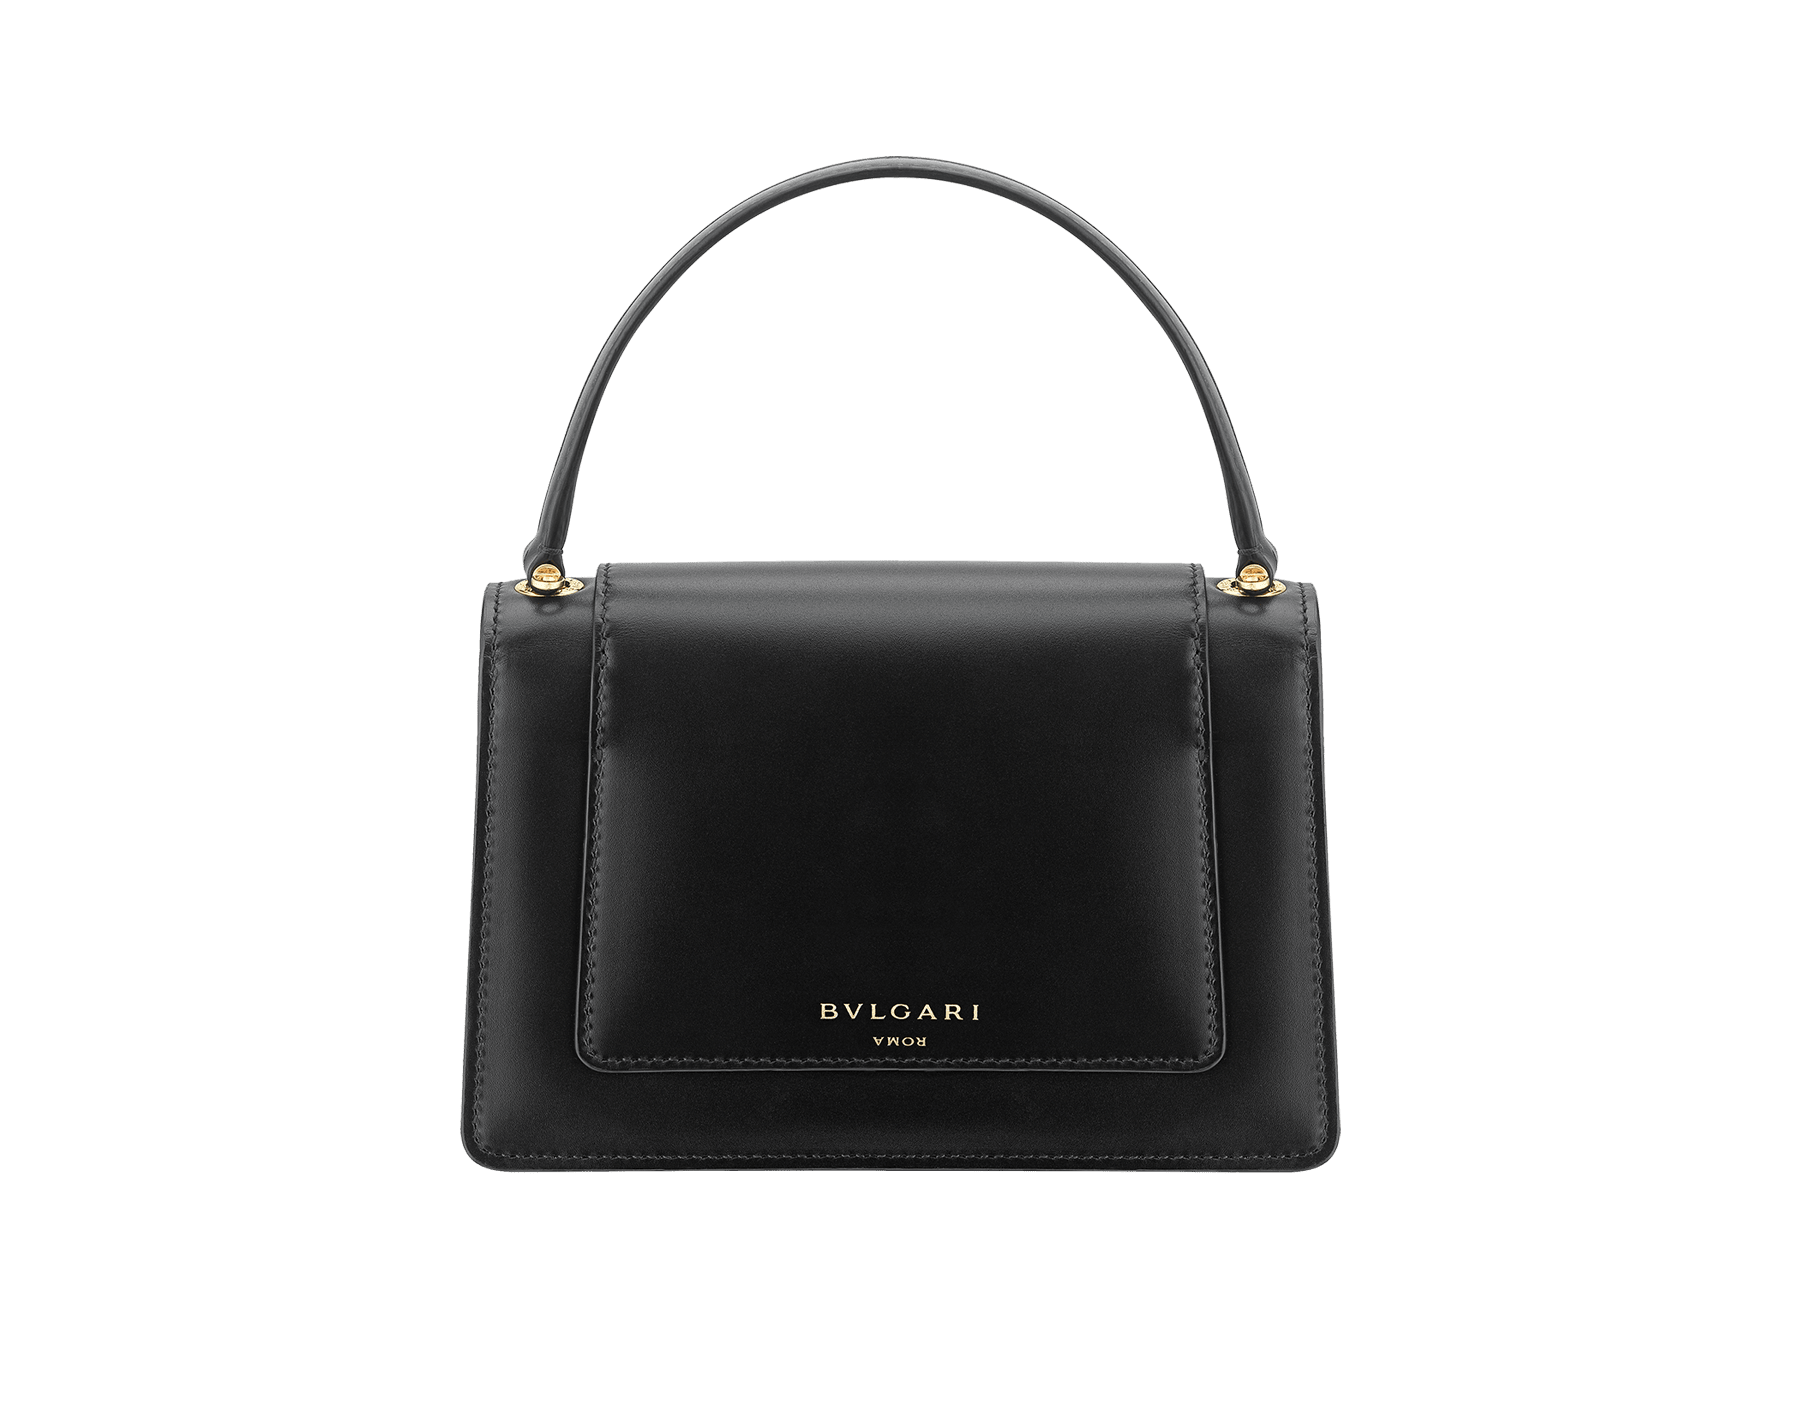 Alexander Wang x Bvlgari belt bag in smooth black calf leather. New double Serpenti head closure in antique gold plated brass with tempting red enamel eyes. Limited edition. 288737 image 3